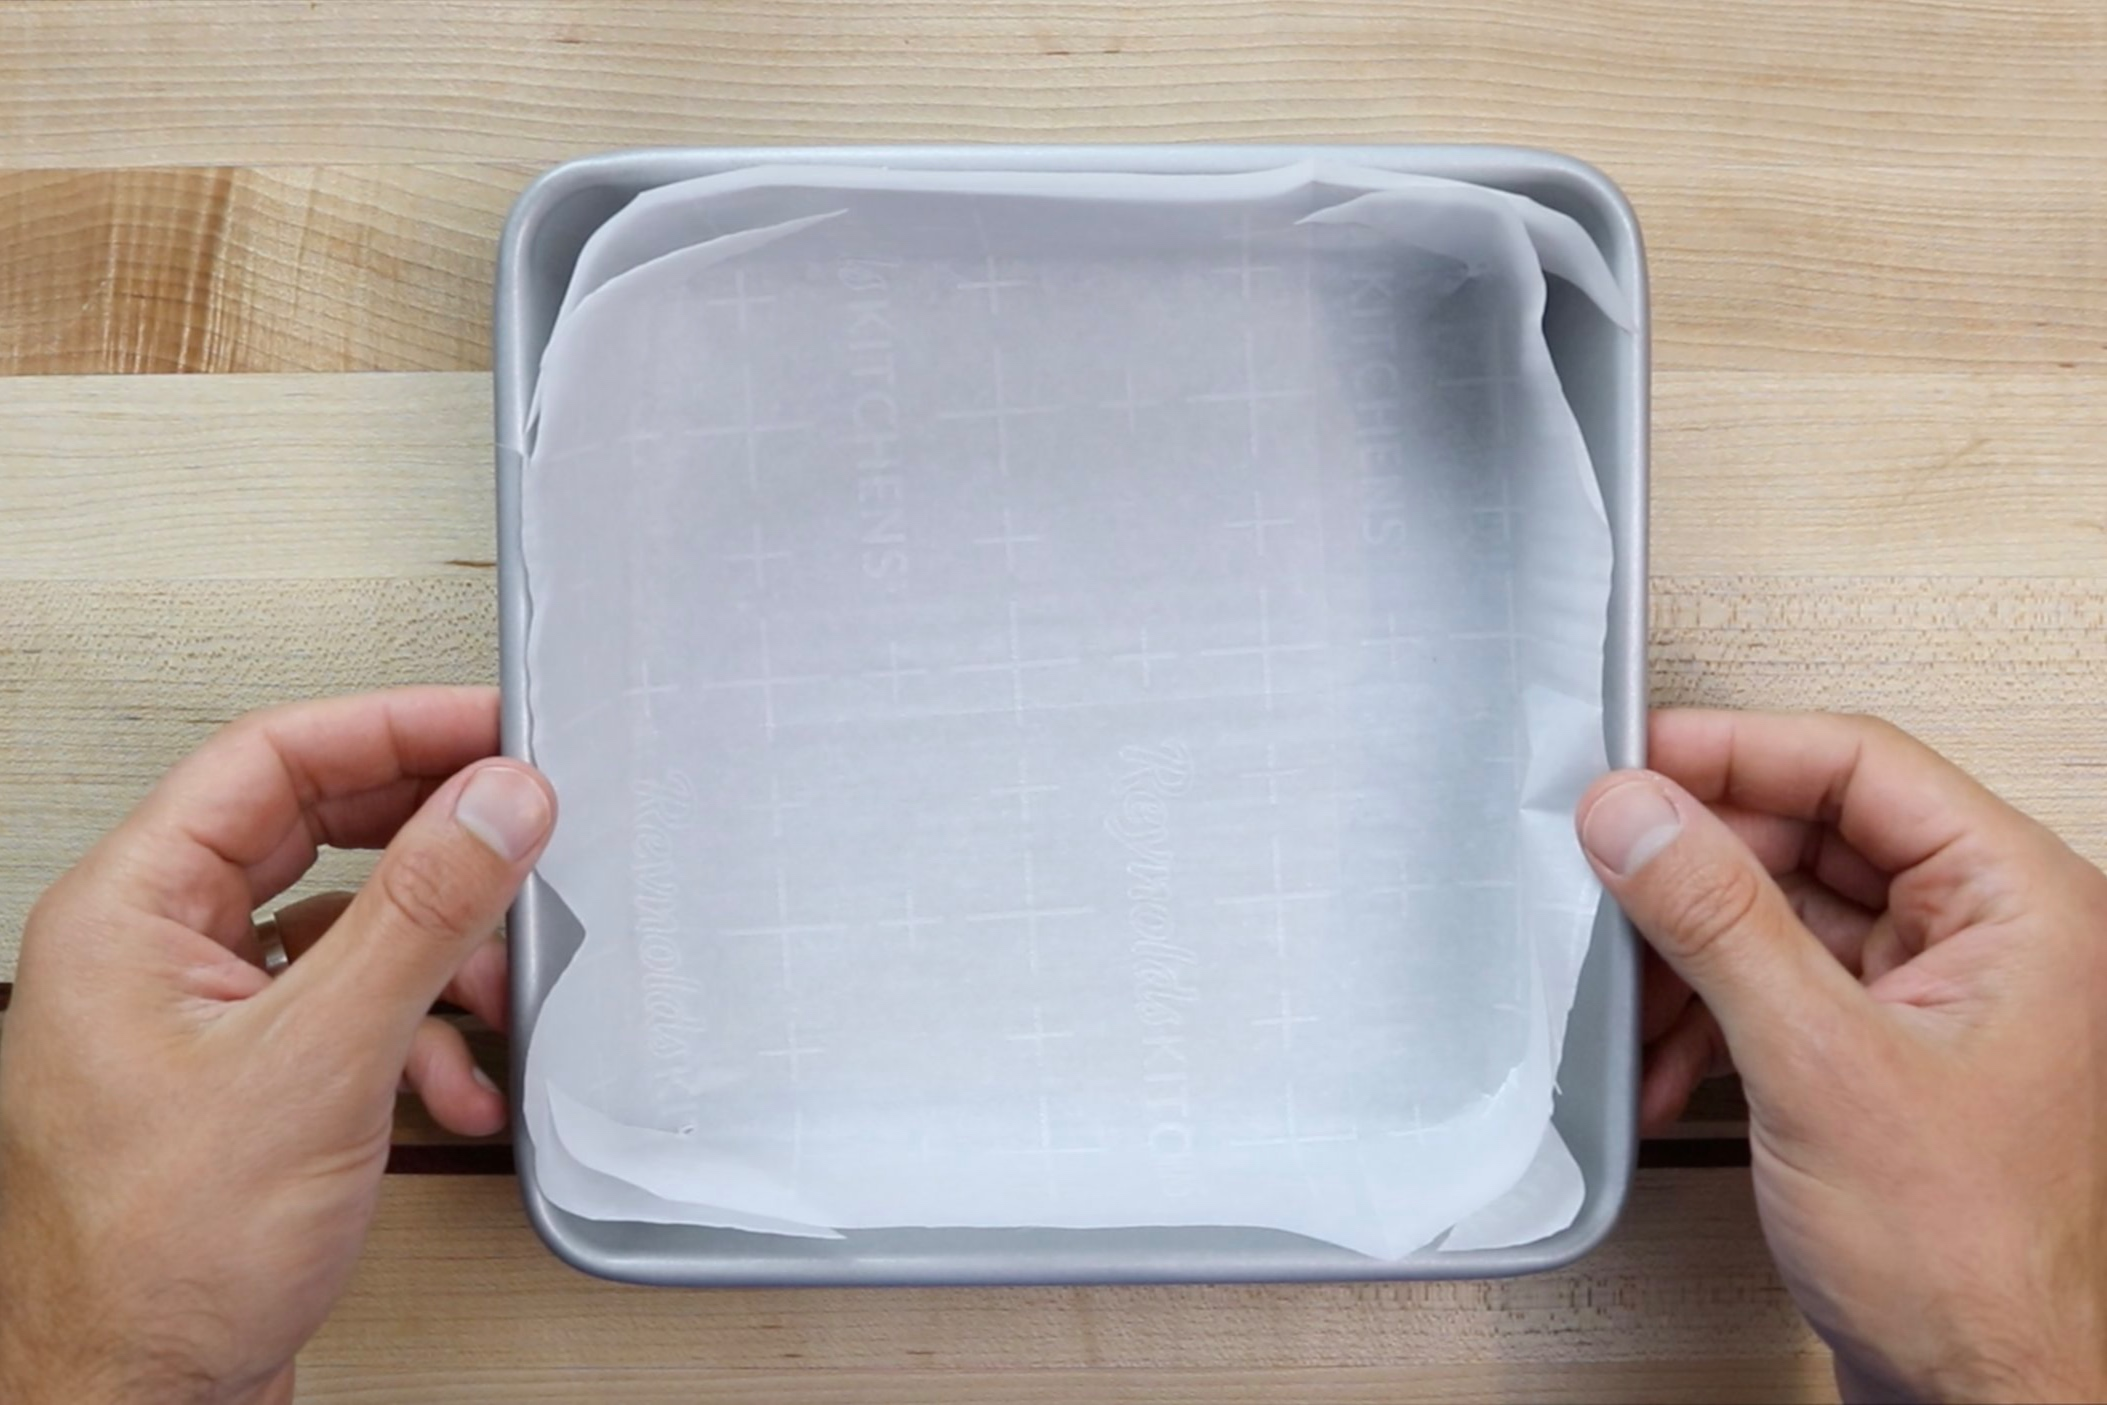 1. Preheat oven to 350 degrees. Line an 8x8 baking dish with parchment paper and set aside. -